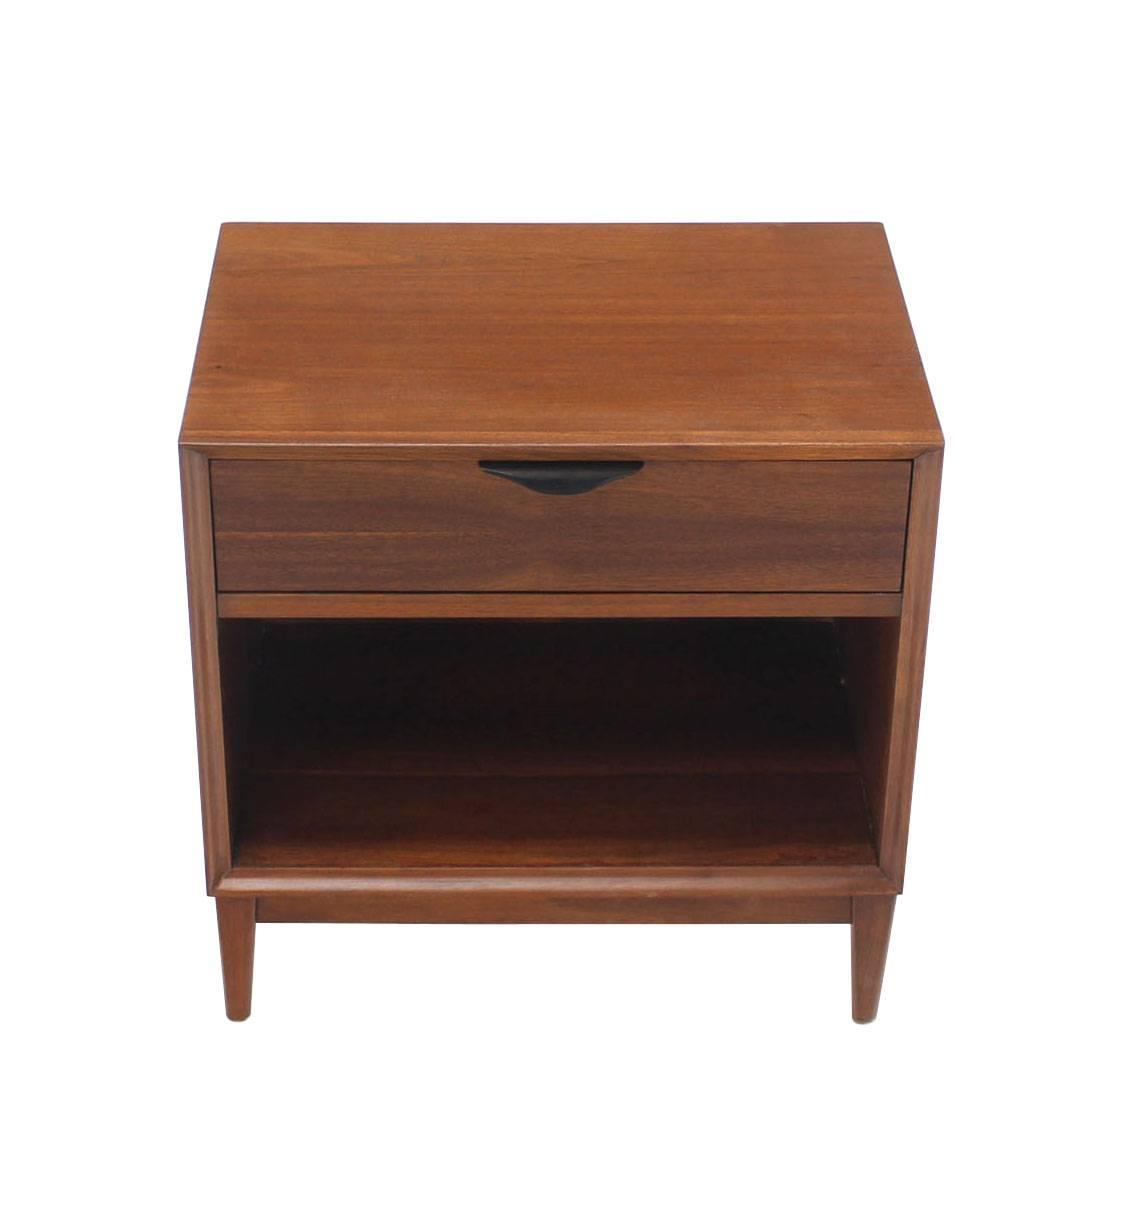 Mid century modern walnut end table or nightstand for sale at 1stdibs